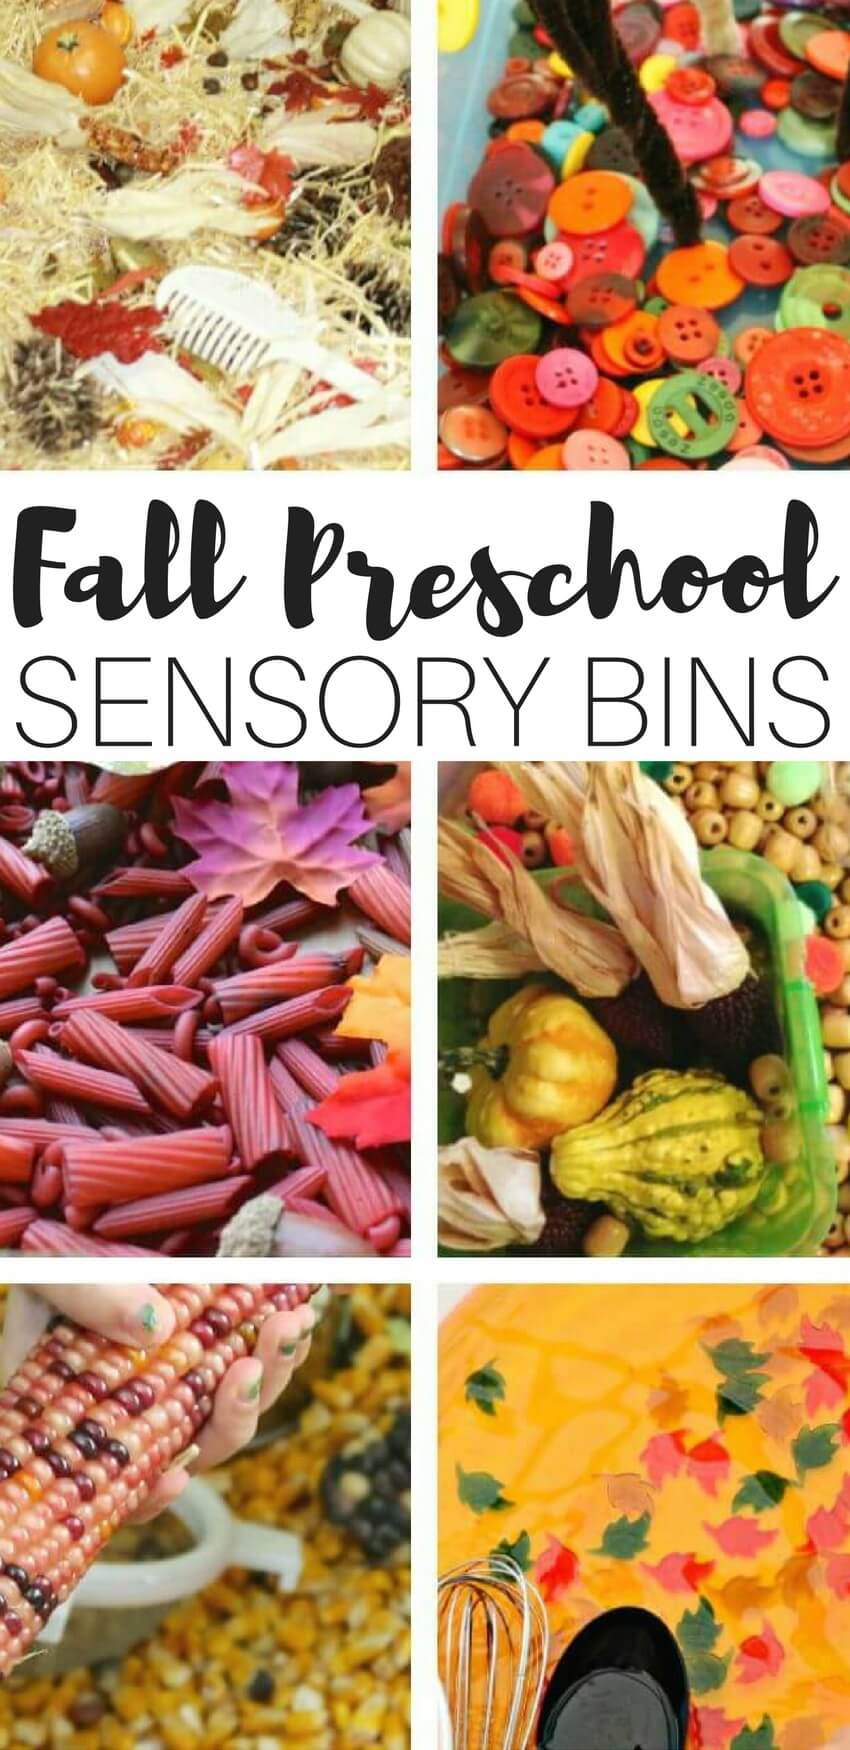 Fall is a fantastic time of year around here to check out a whole new palette of colors. We have deep red, orange, purple, and yellow hues every where you look from indian corn to changing leaves to gourds and mums. Fall is the perfect time of the year to observe and discover beautiful colors. These preschool Fall sensory bins capture the colors of Fall with hands on play and learning!